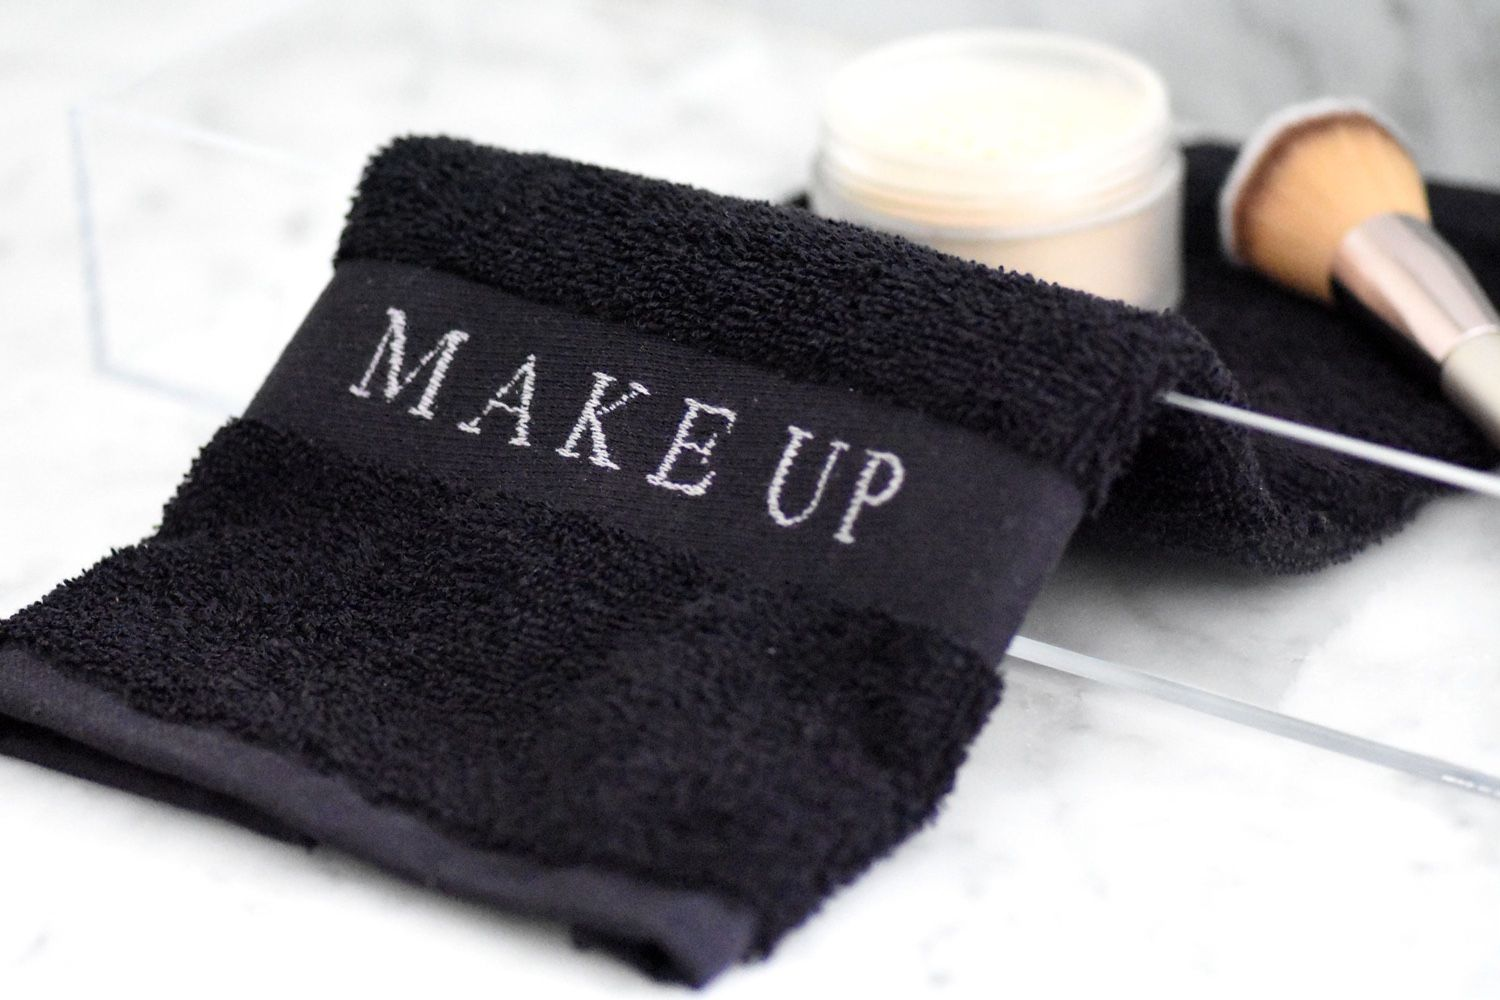 The Little Black Towel is a luxurious, high quality make